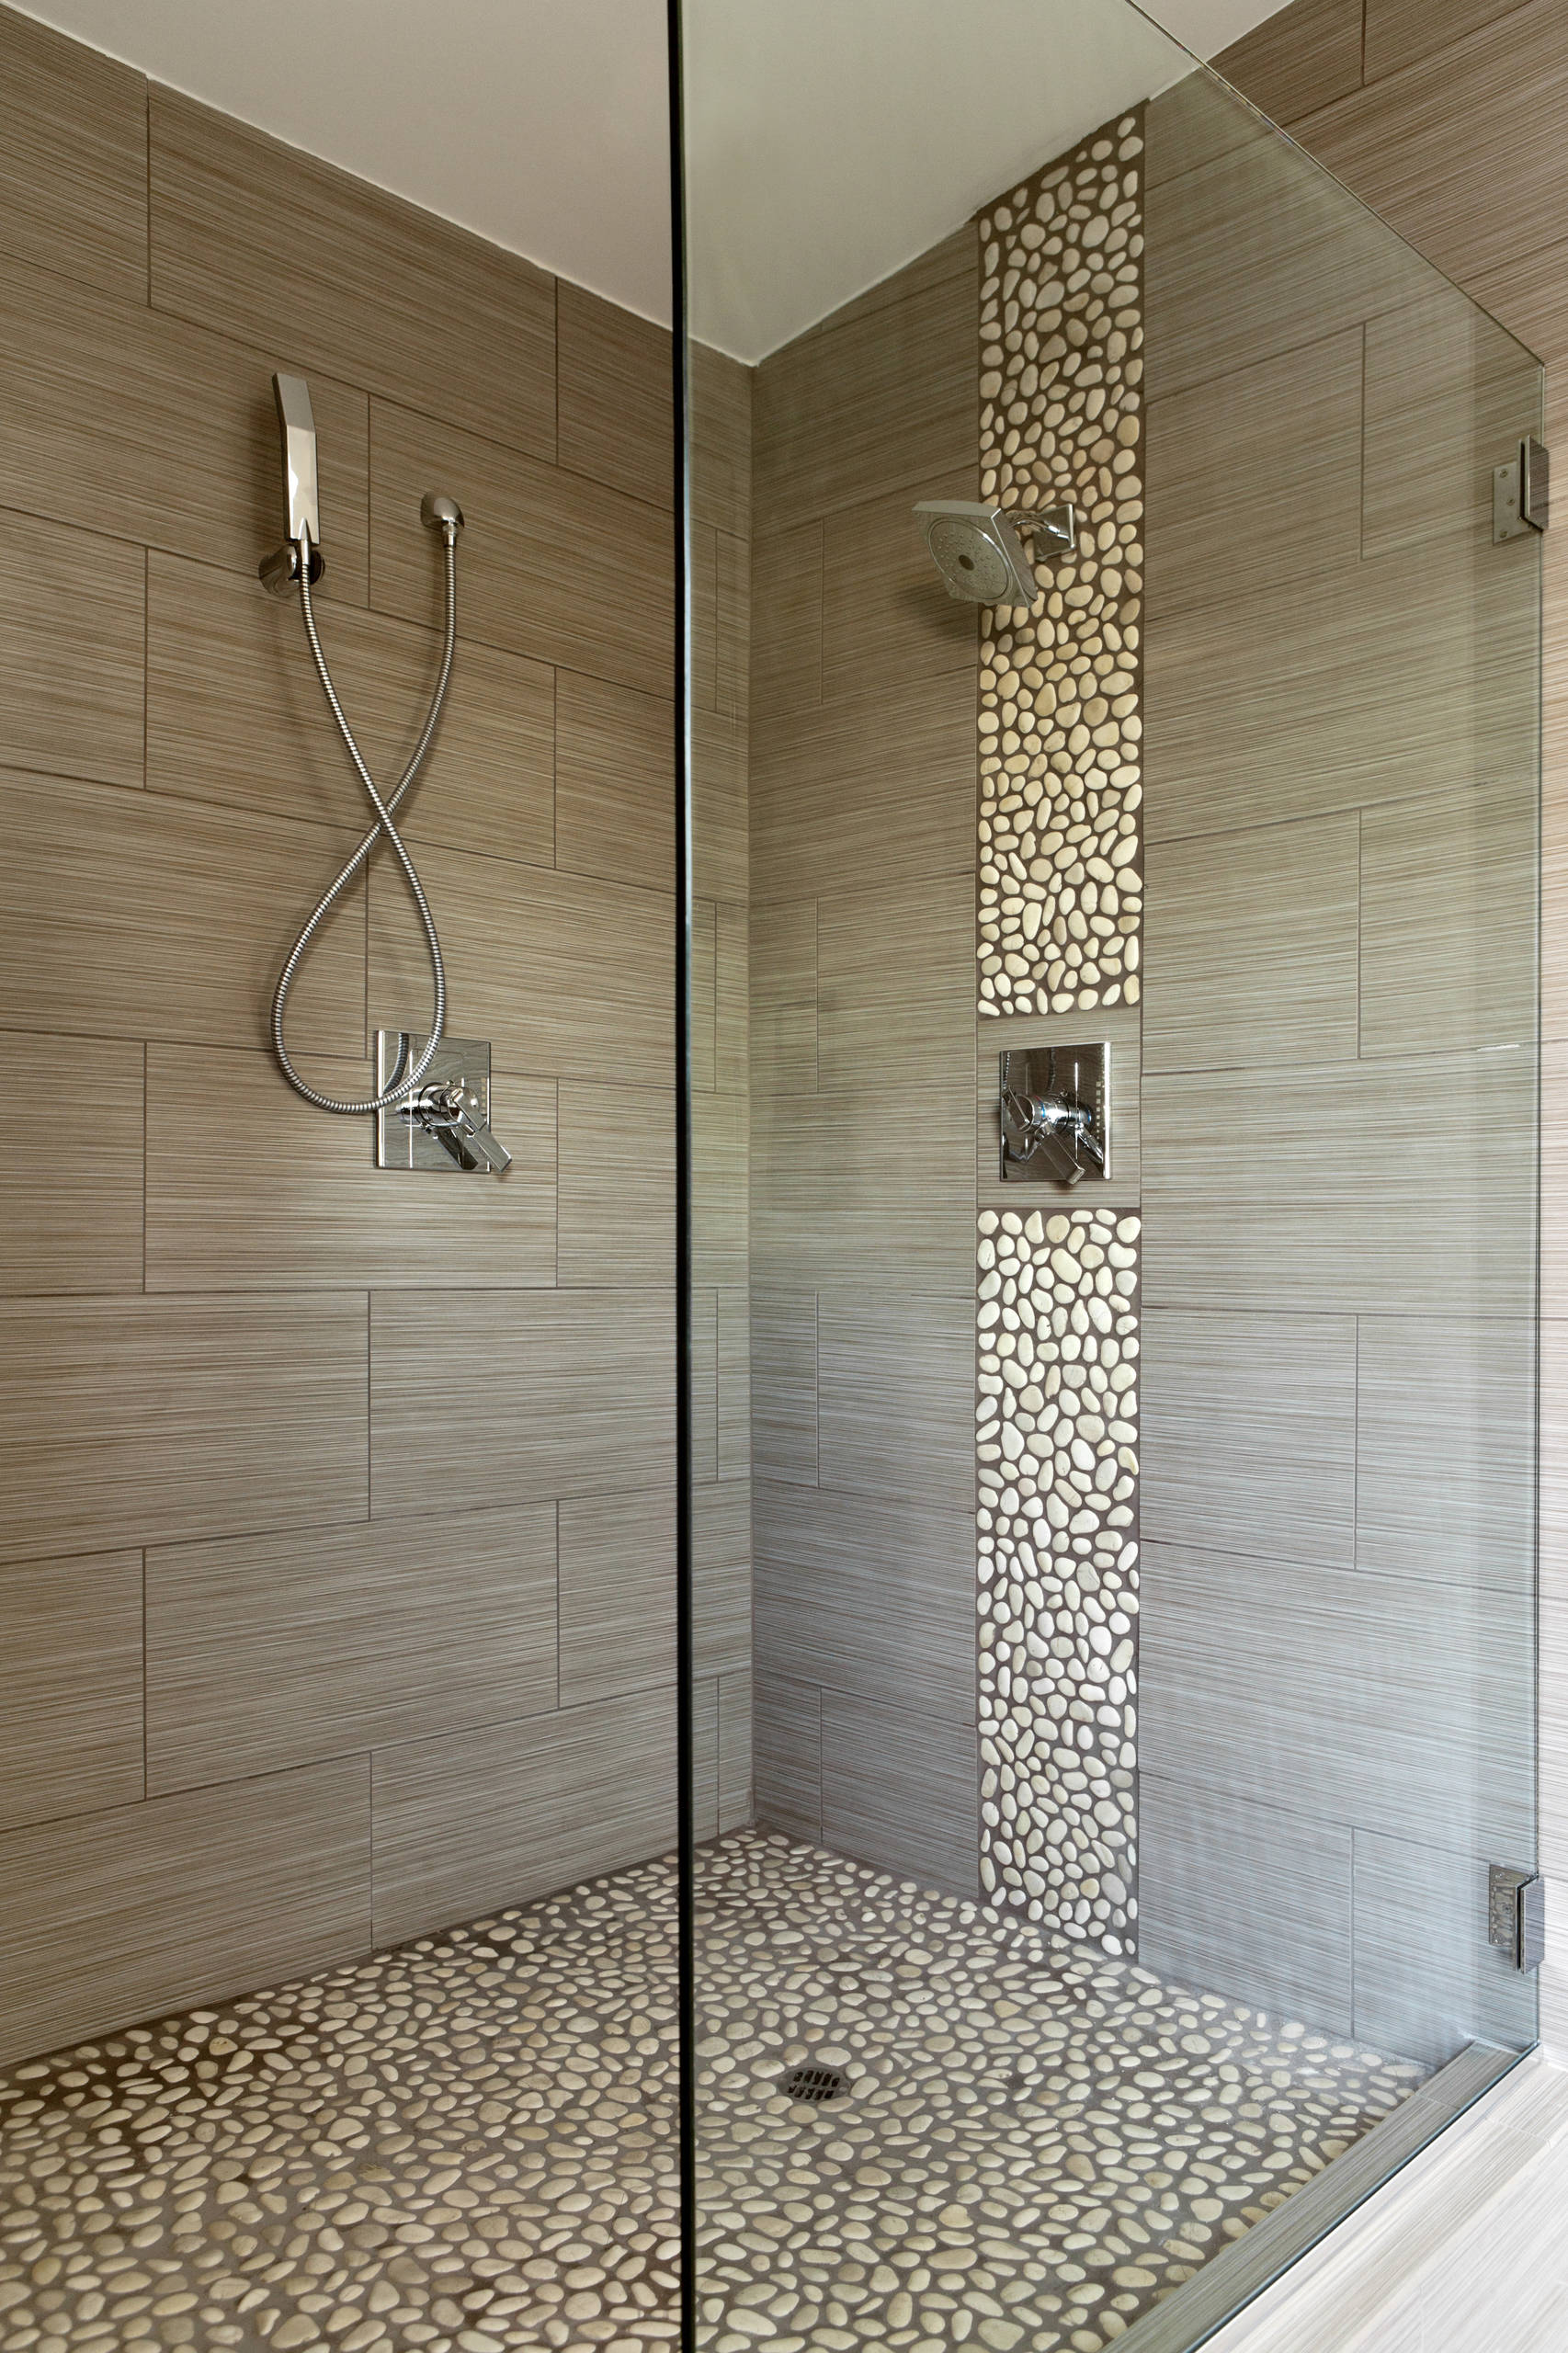 Buy A Shower Grate Why Do Prices Vary So Much My Decorative